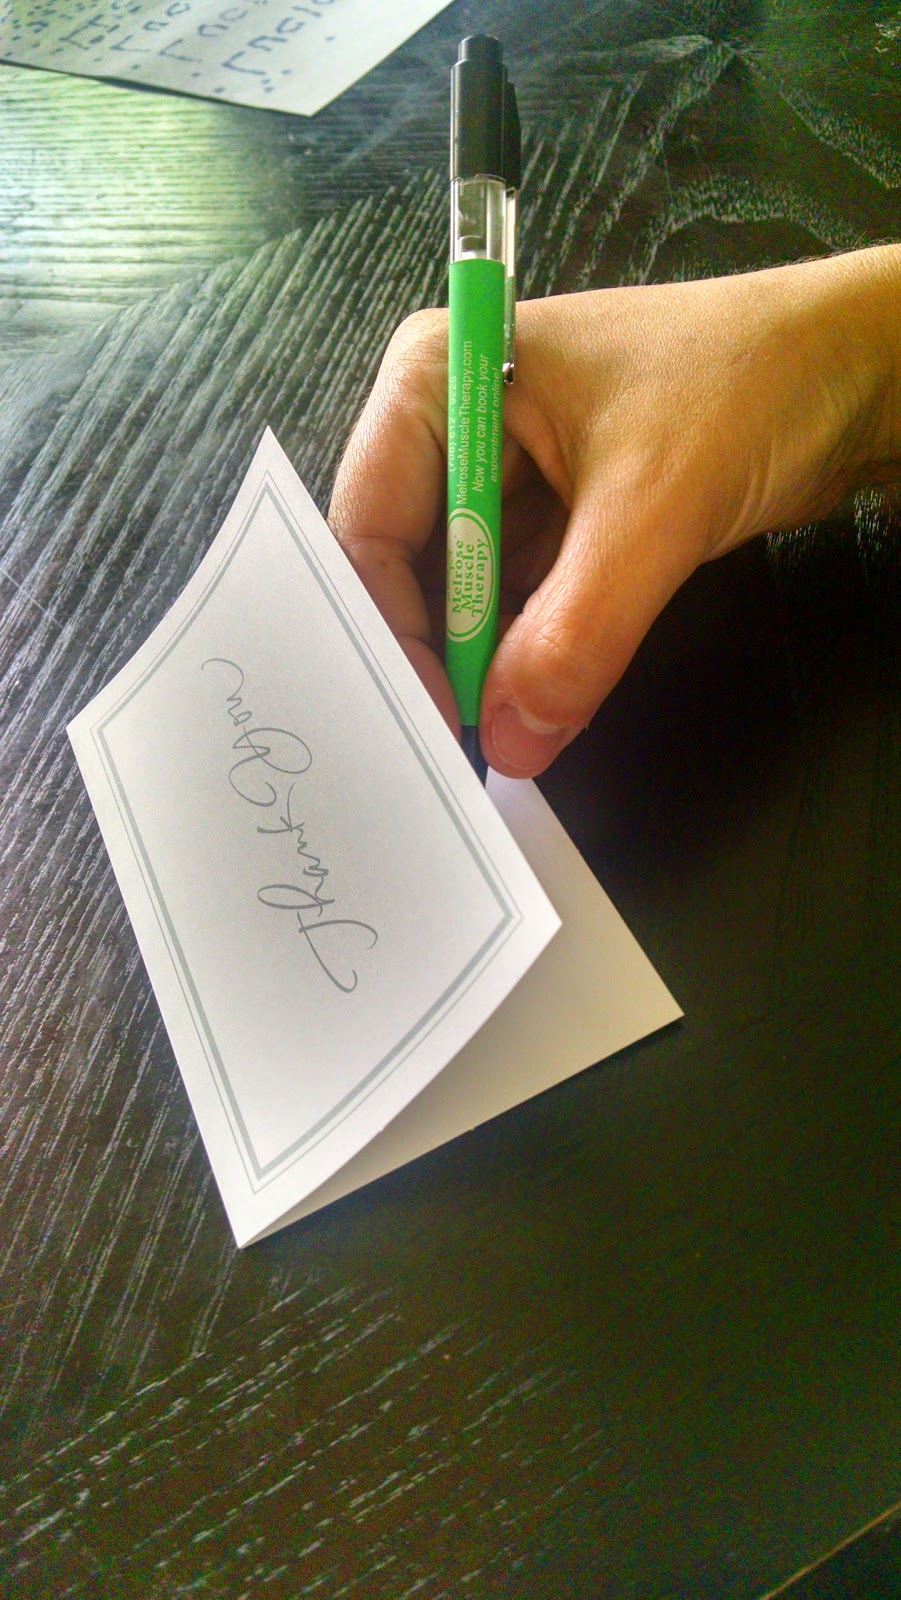 When was the last time you wrote a thank you note?